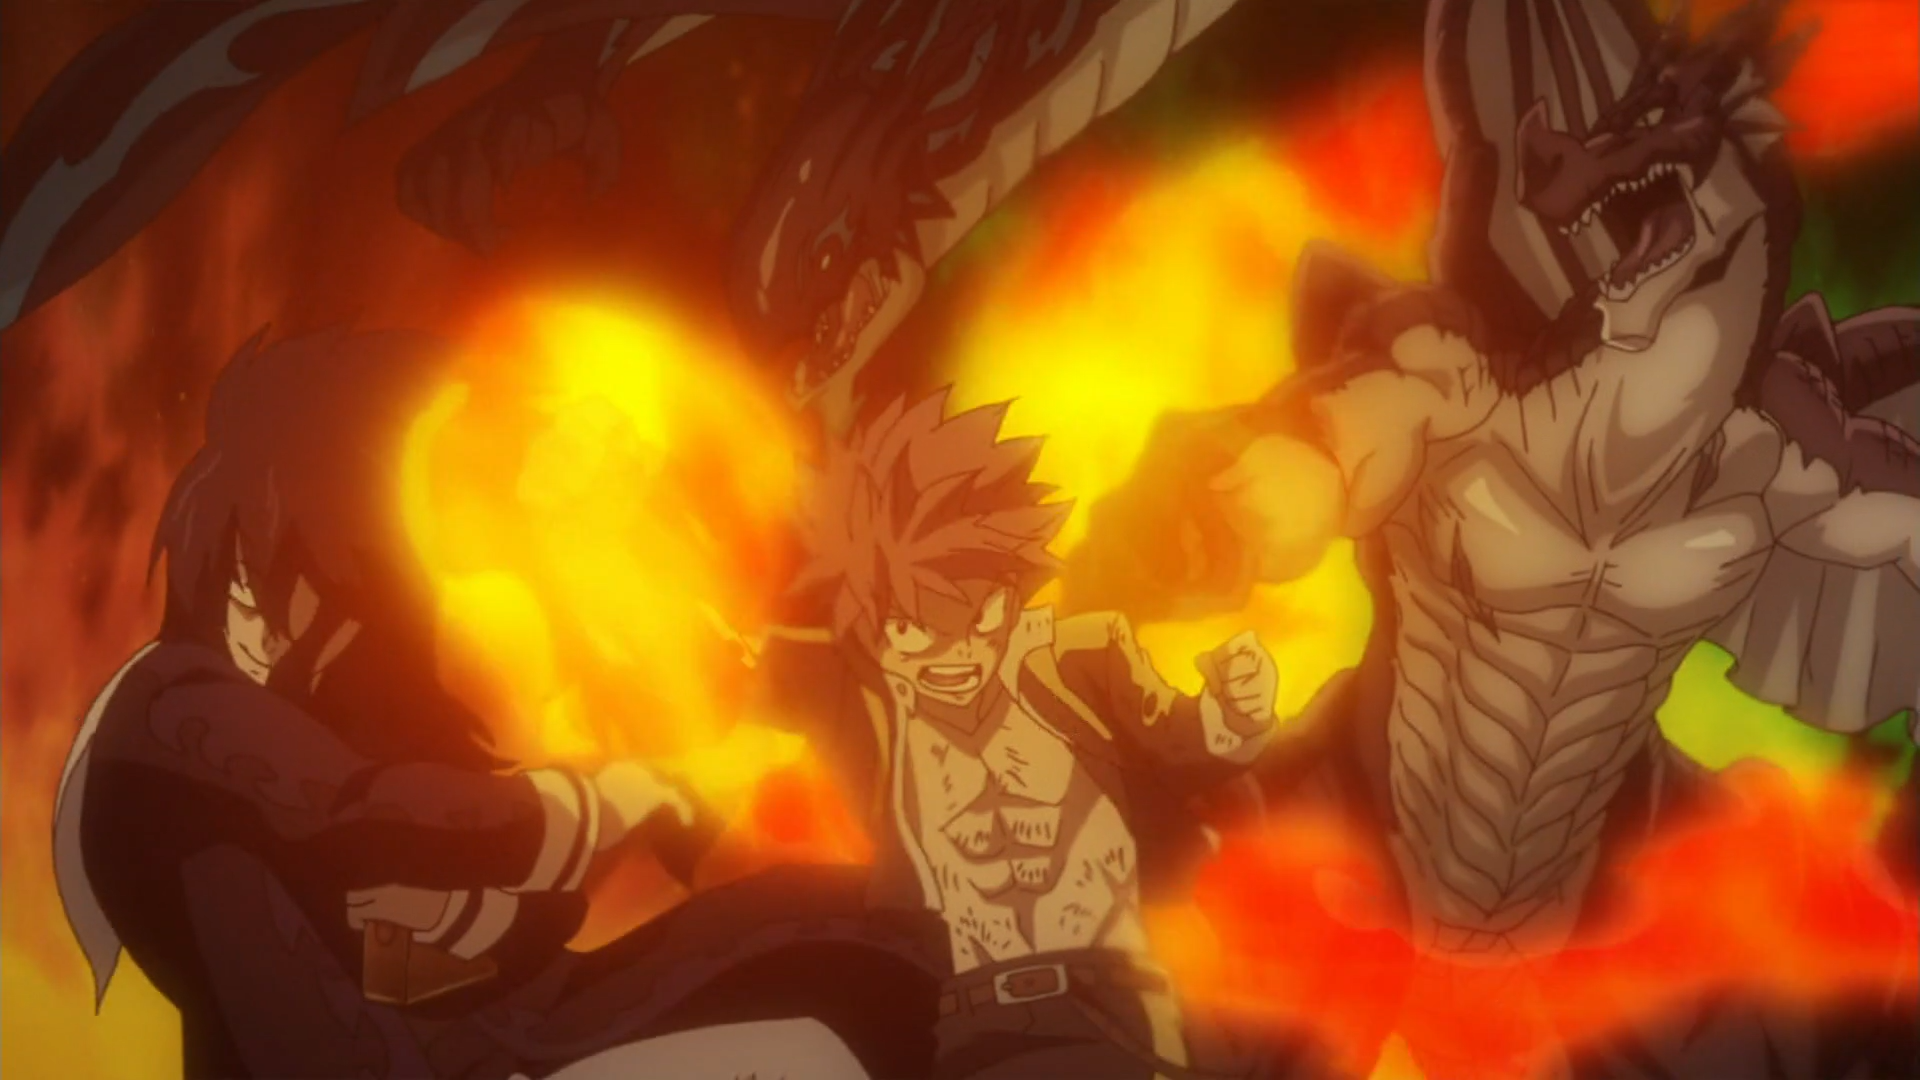 [HorribleSubs] Fairy Tail S2 - 83 [1080p]_001_25682